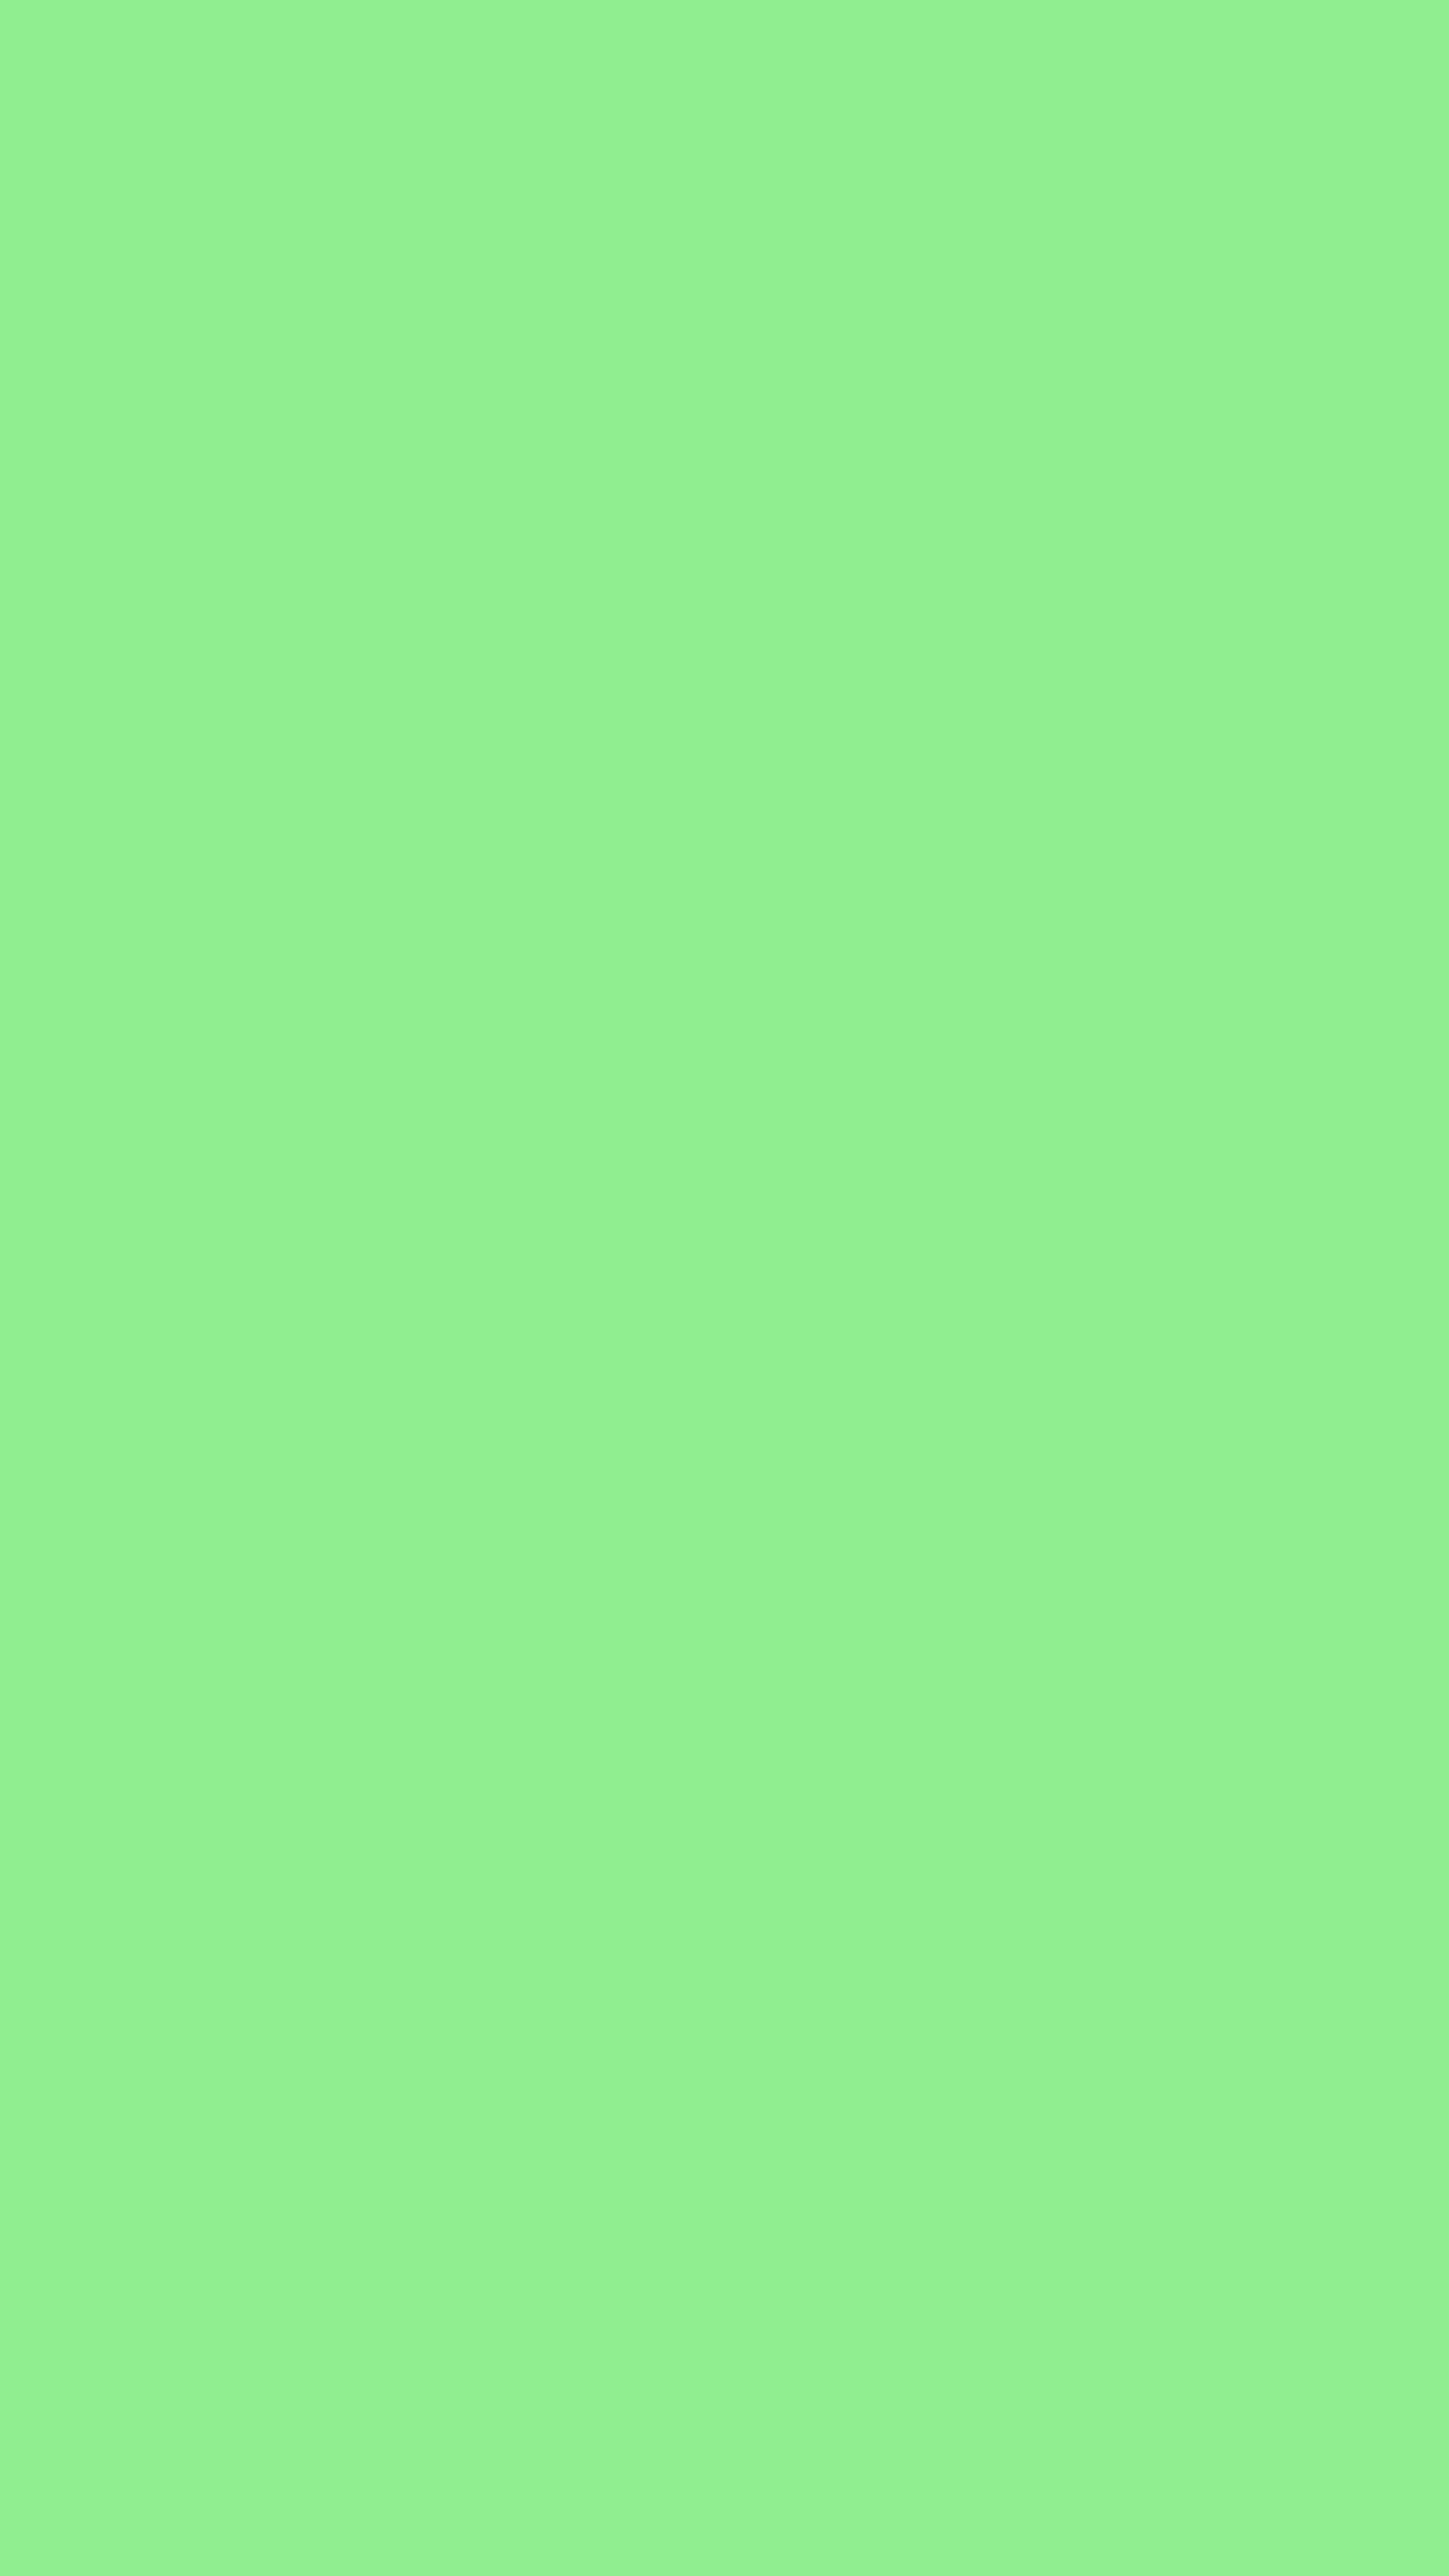 2160x3840 - Solid Green 32